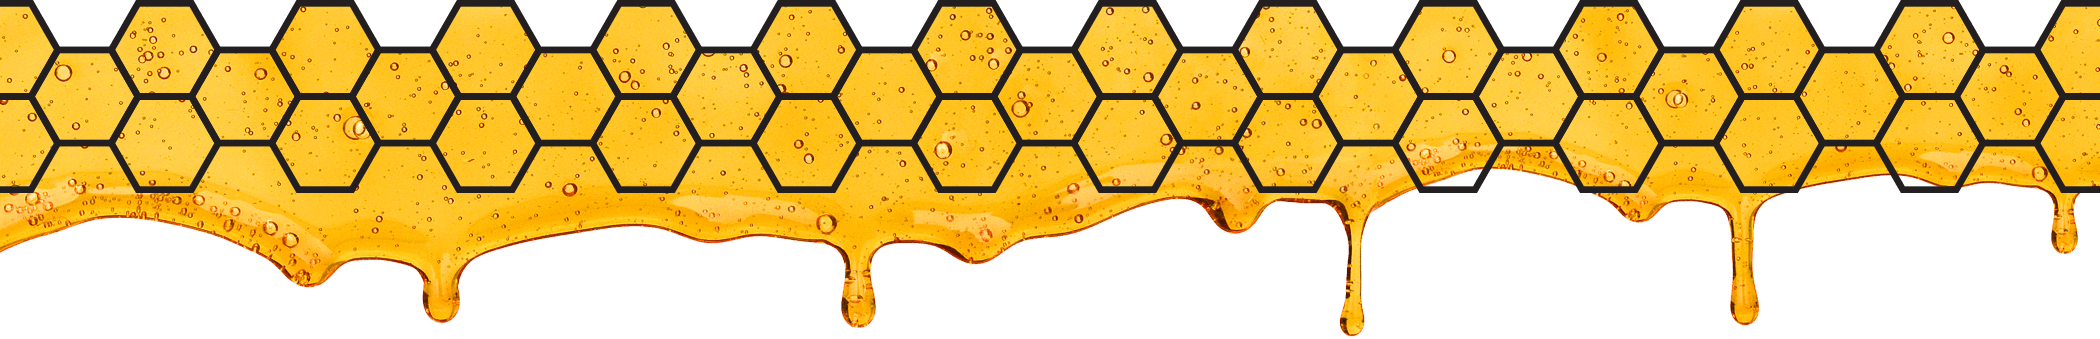 Honeycomb and Honey Dripping